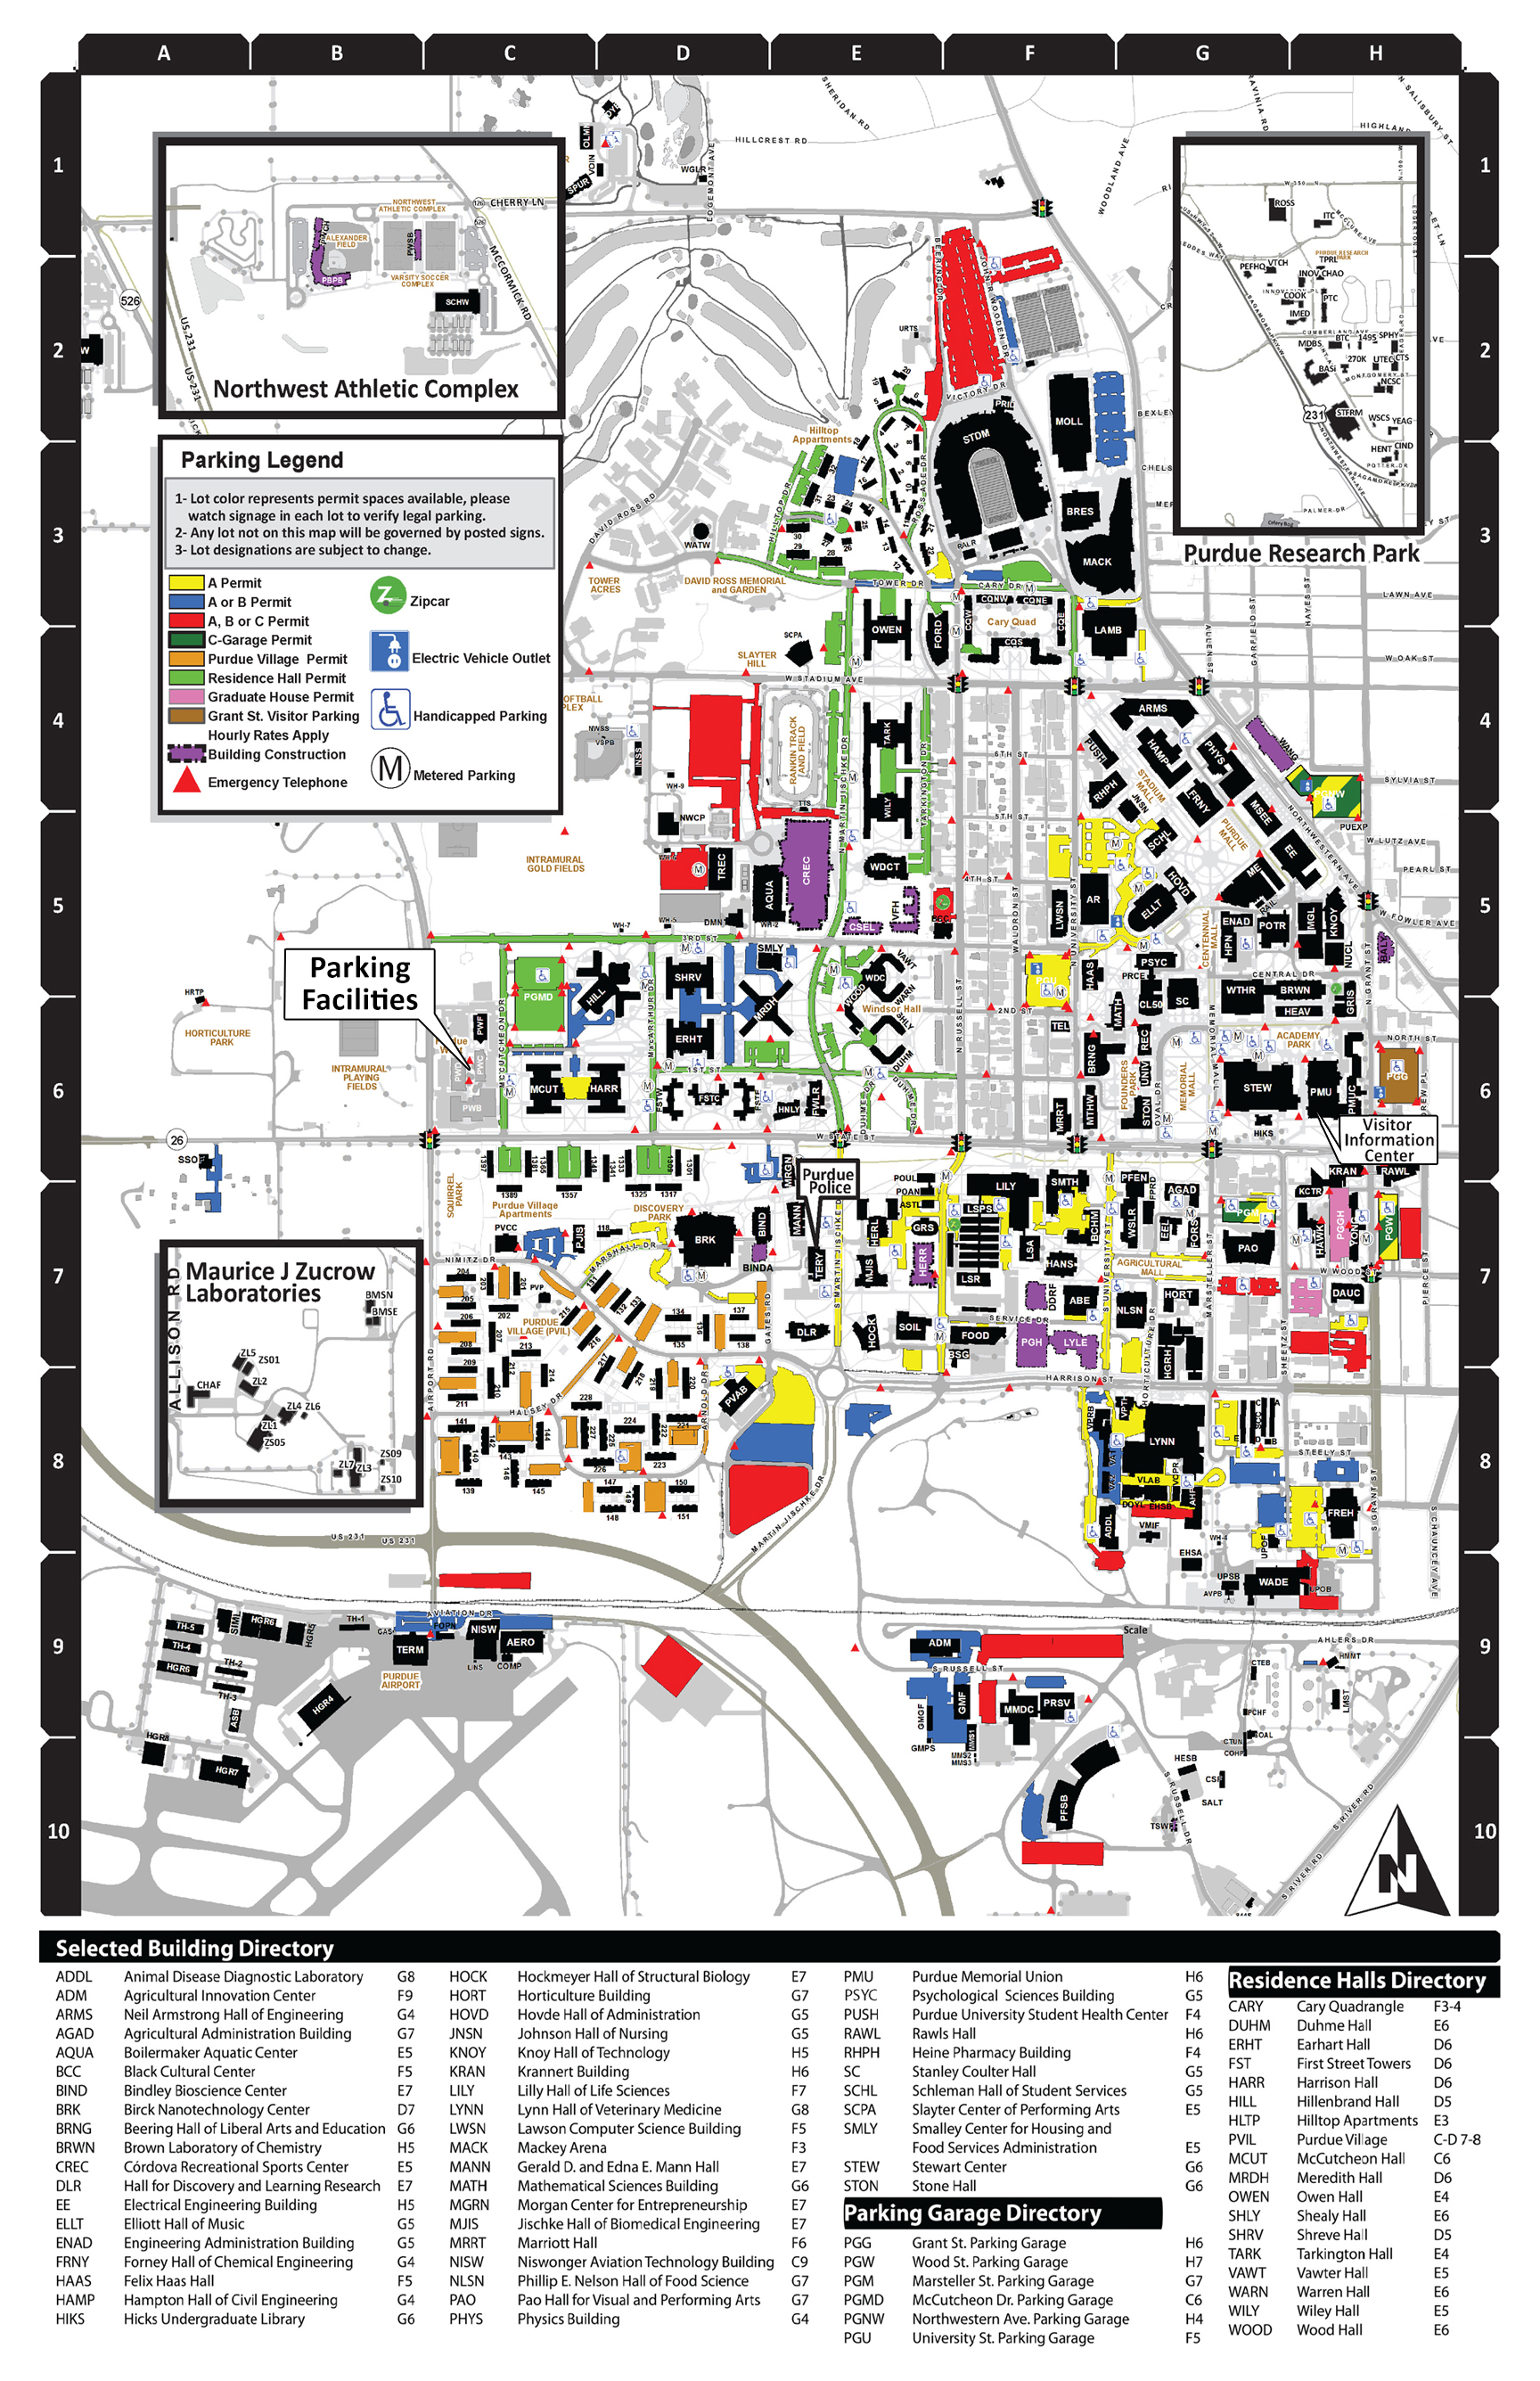 Purdue University Campus Map PRIME Lab at Purdue University, West Lafayette, Indiana